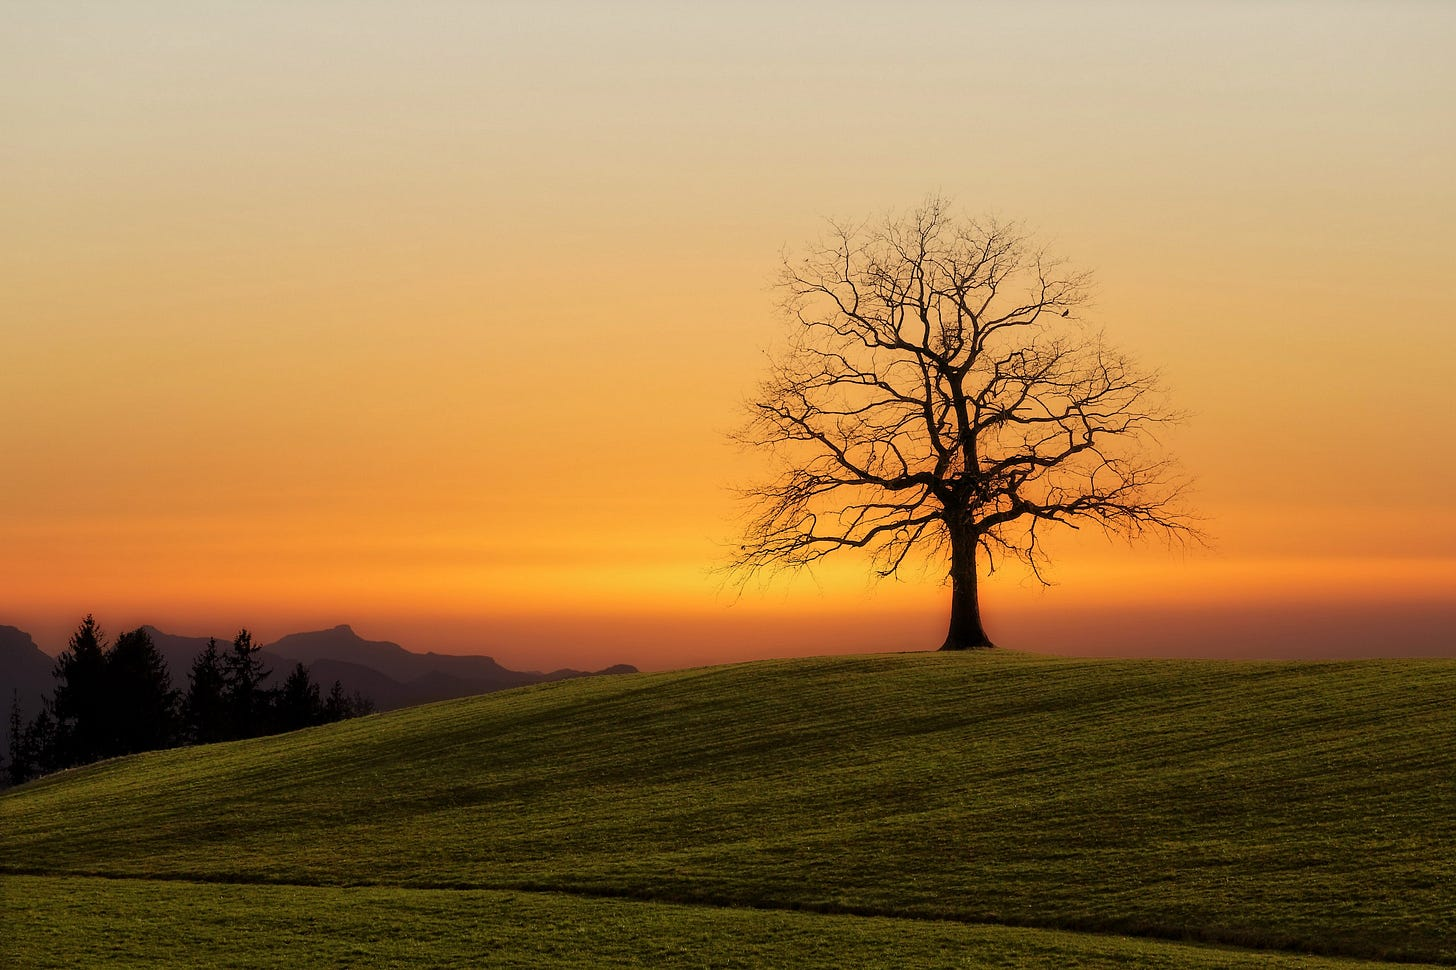 image of a tree on a hill at sunset for poem by Larry G. Maguire